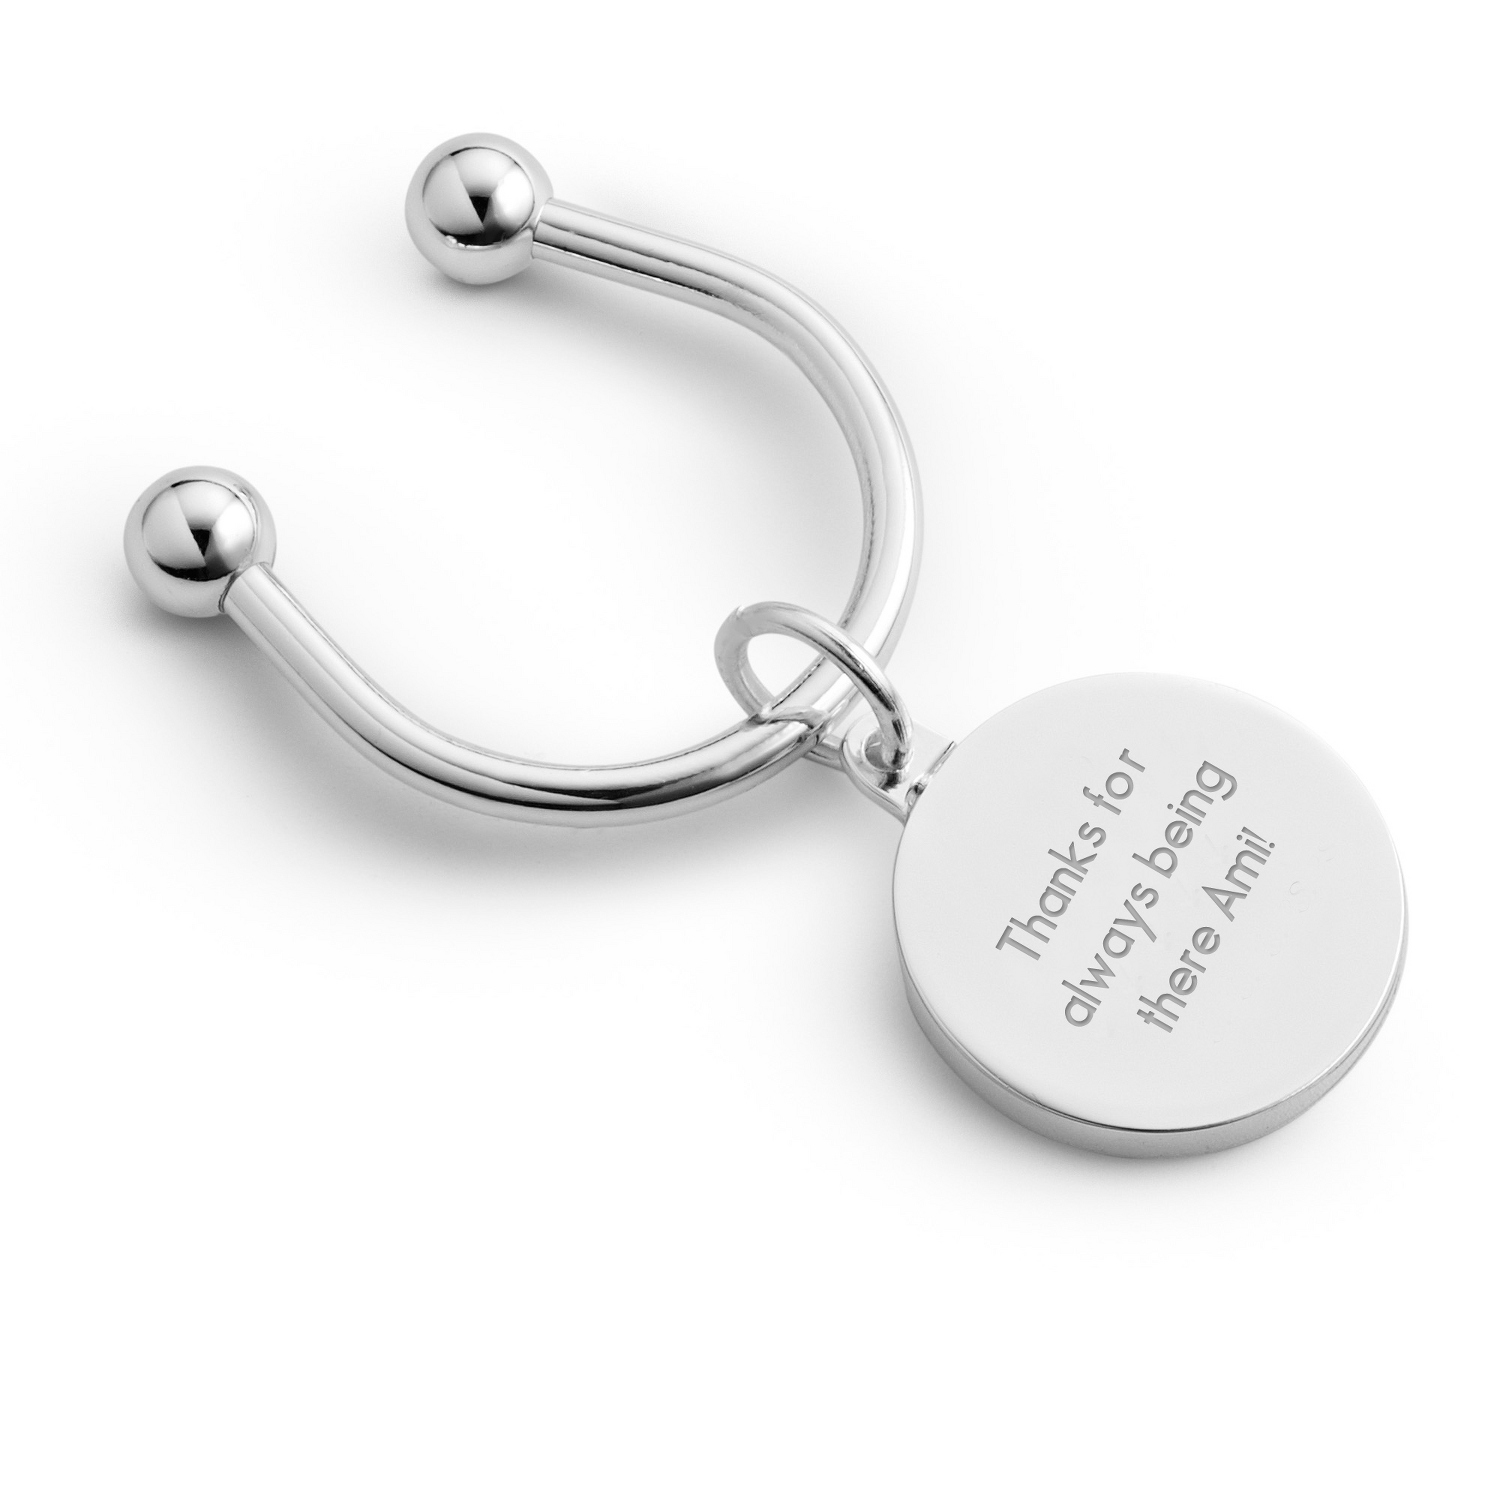 Personalized Men s Key Chains at Things Remembered 549a94102fd6